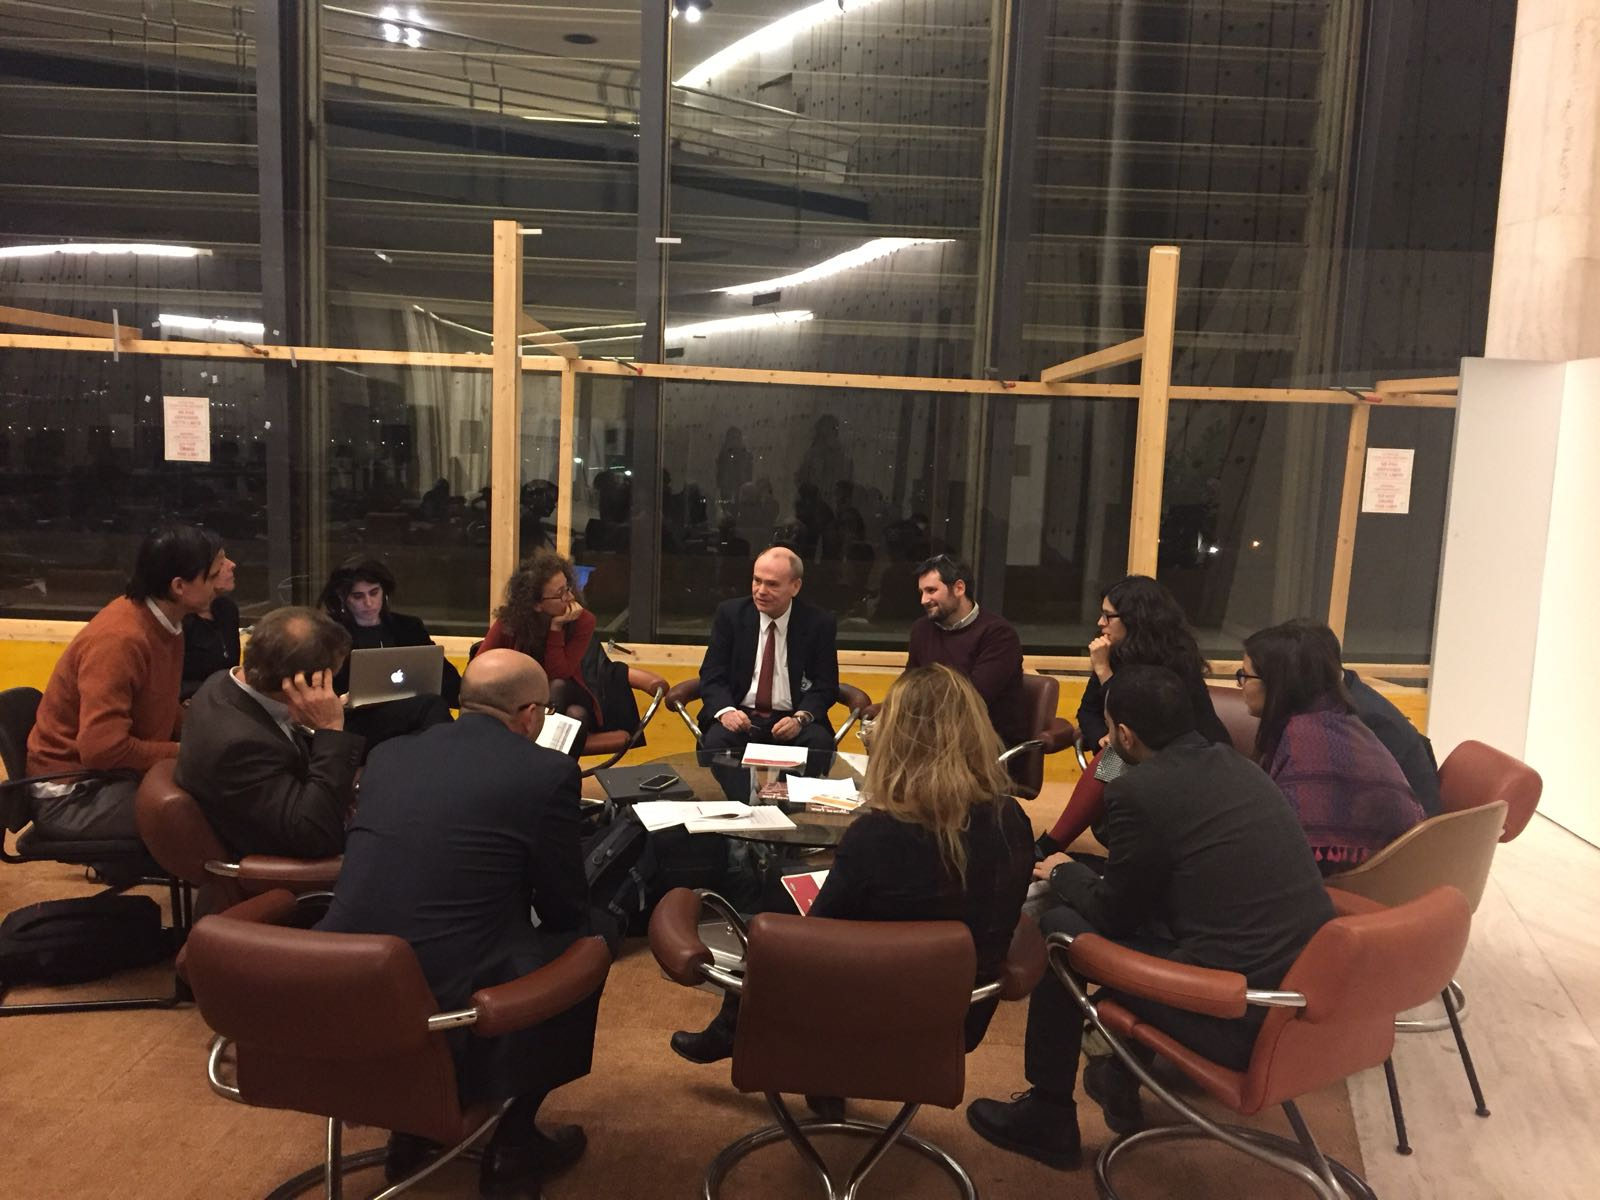 Mind the gap partner meet up at the 6th annual un forum on business somos presence at the 6th annual un forum on business and human rights in geneva switzerland provides an excellent opportunity to combine content with m4hsunfo